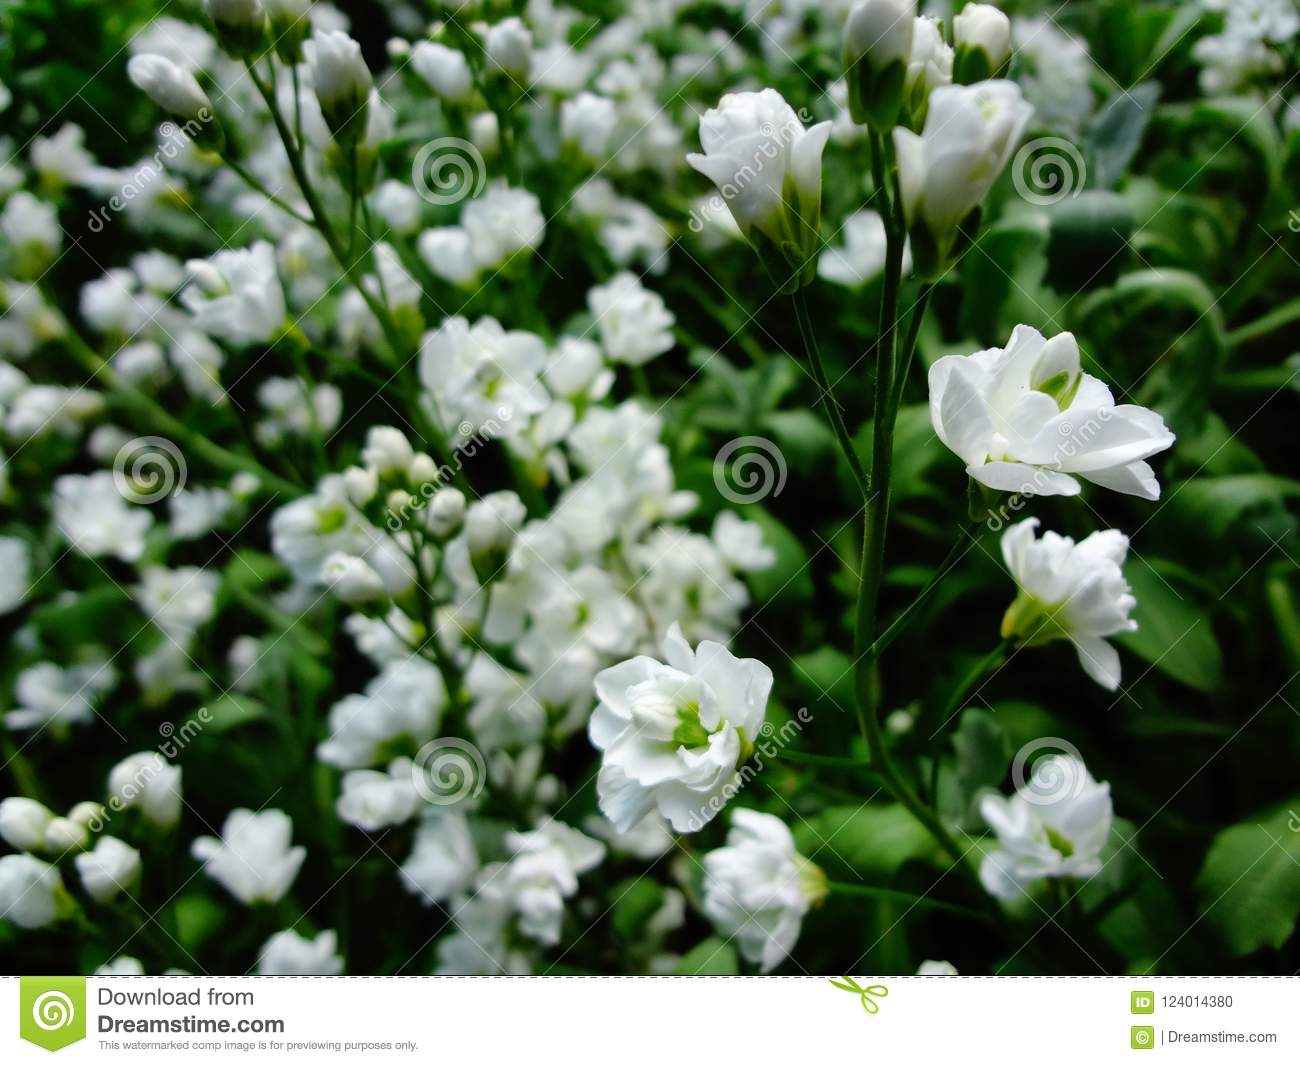 Arabis Blossoming With Beautiful White Flowers Stock Photo Image